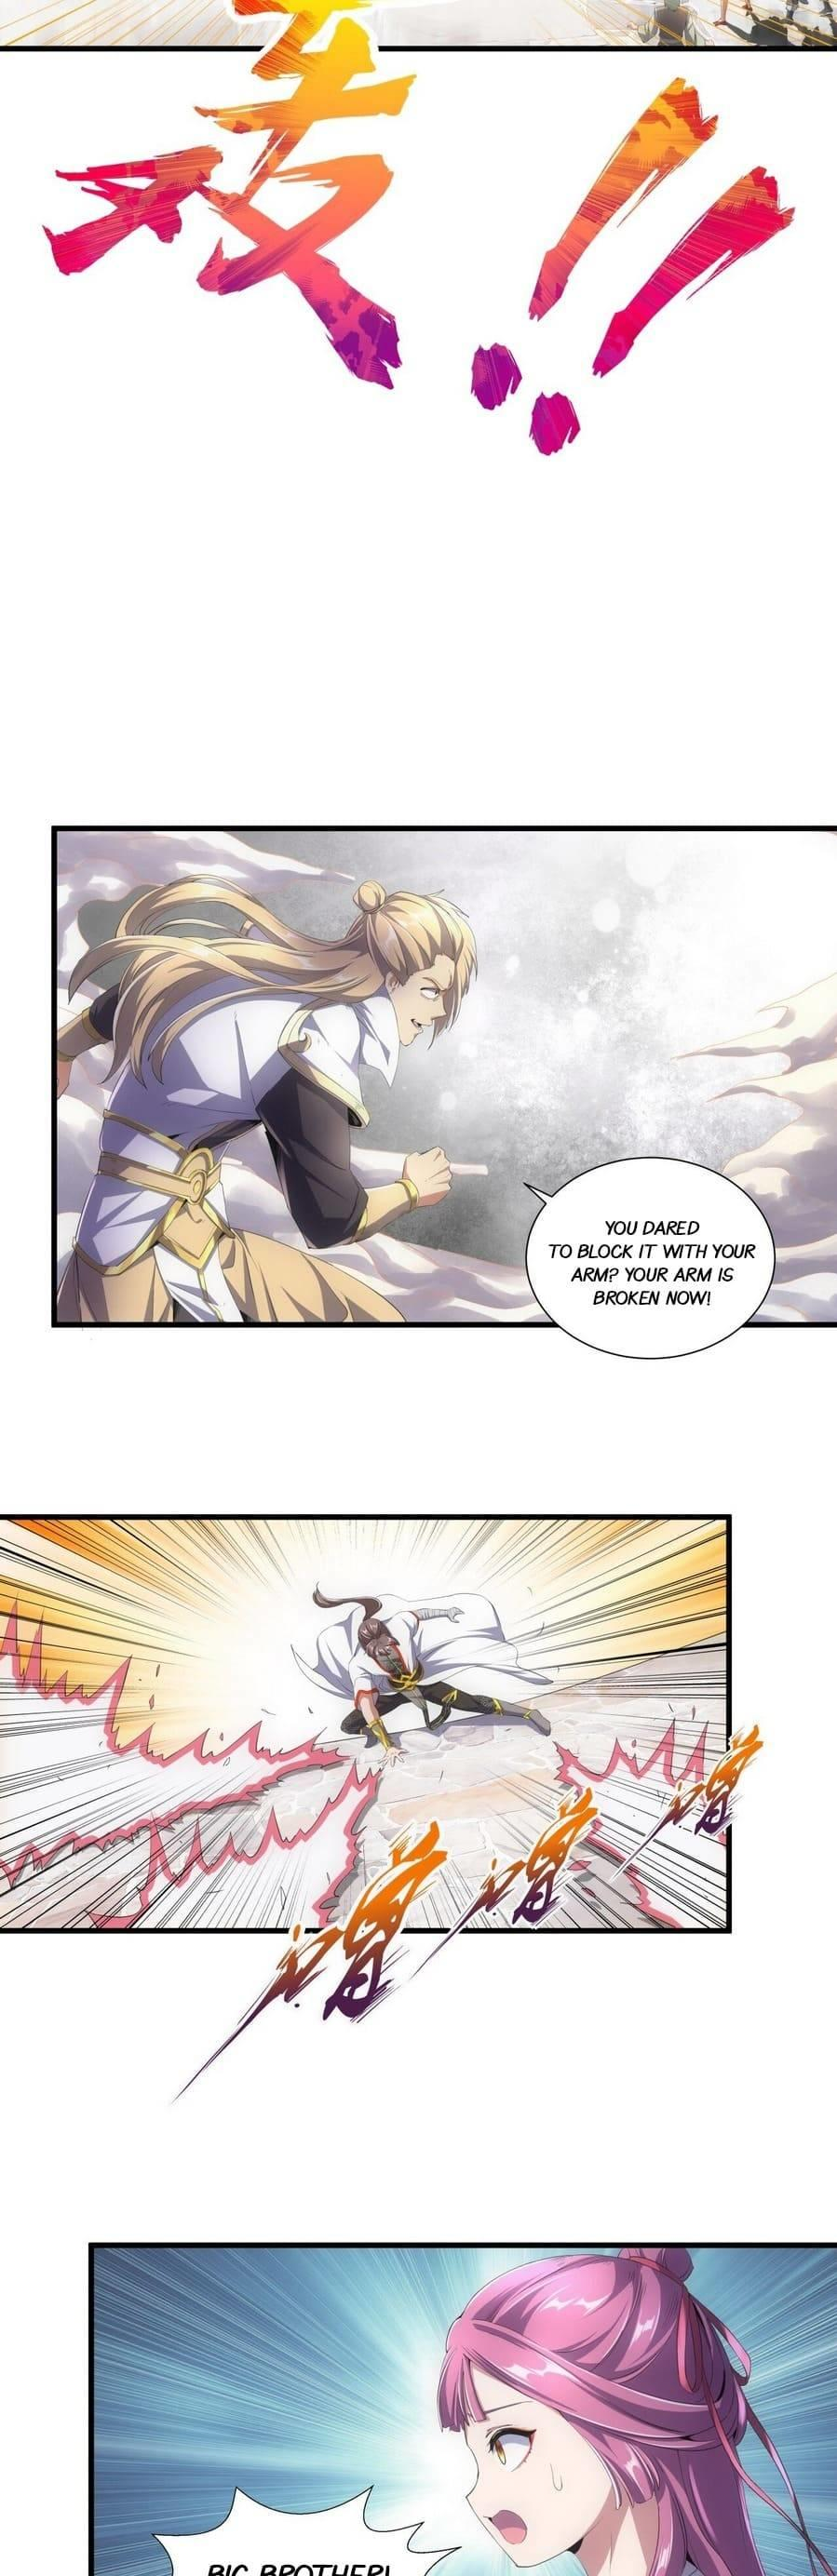 Beastmaster Of The Ages Chapter 37 page 5 - Mangakakalots.com